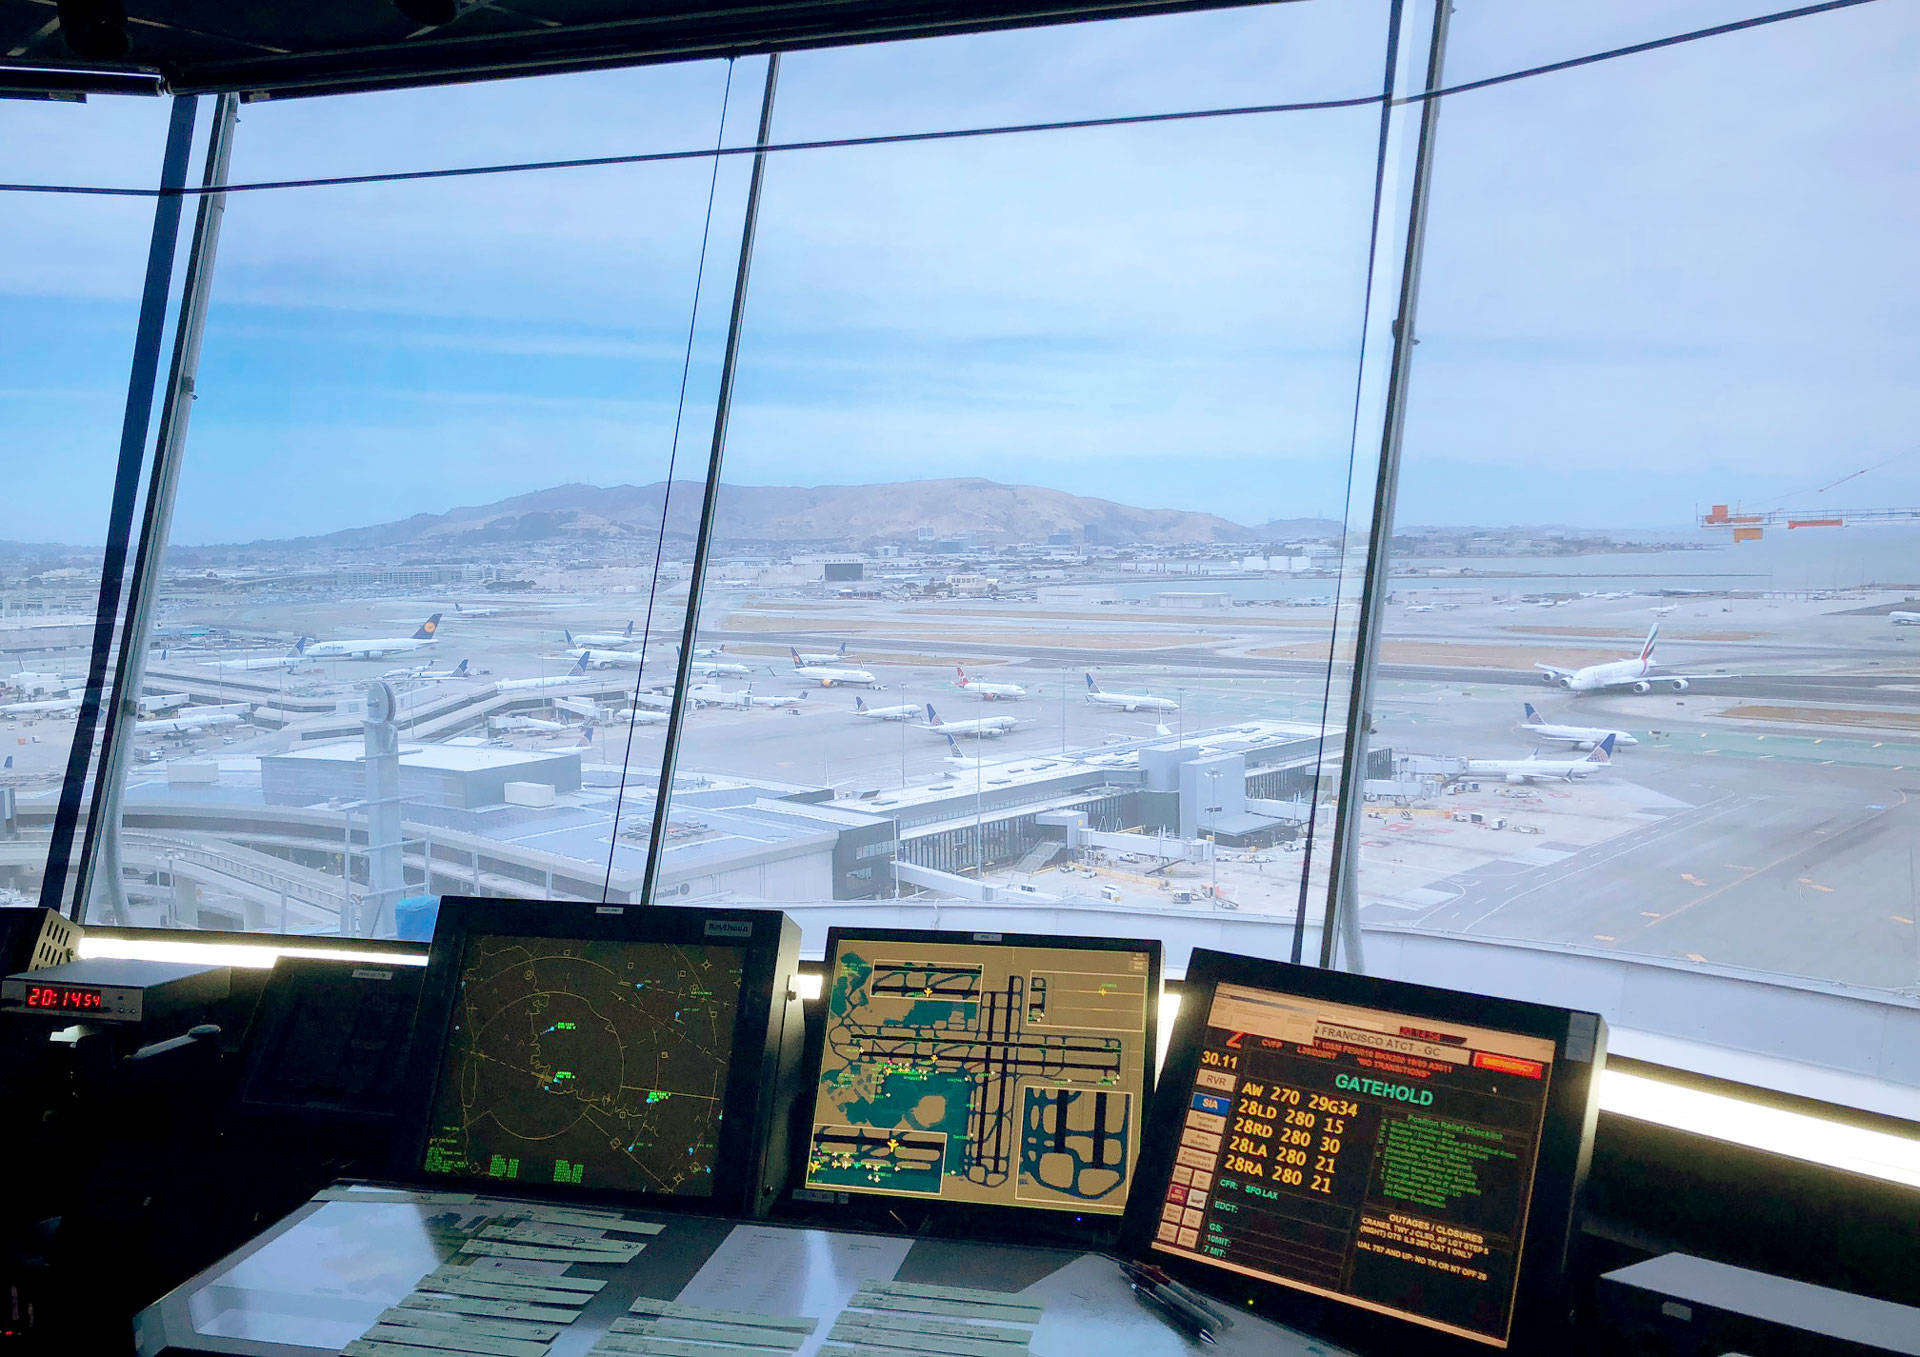 An air traffic controller's view looking northwest from San Francisco International Airport's control tower.  Courtesy of Frederick Naujoks